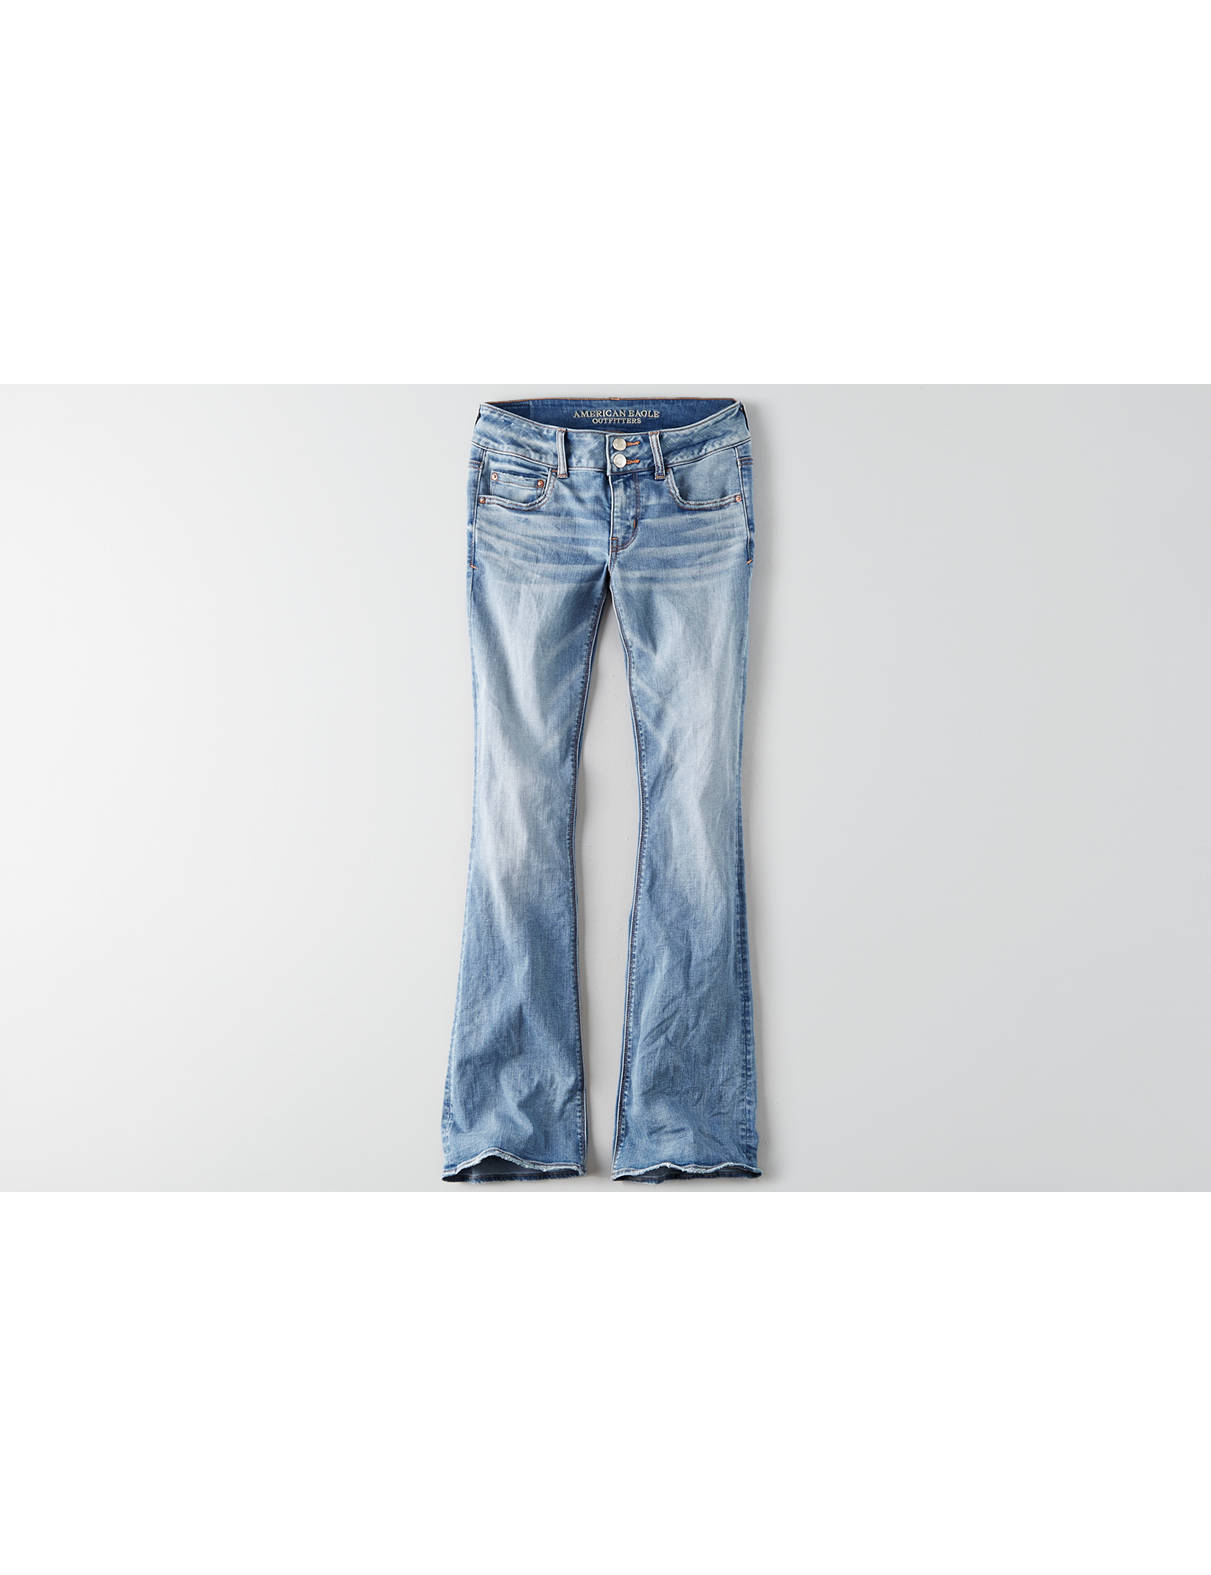 Flared Jeans: Artist Jeans for Women   American Eagle Outfitters